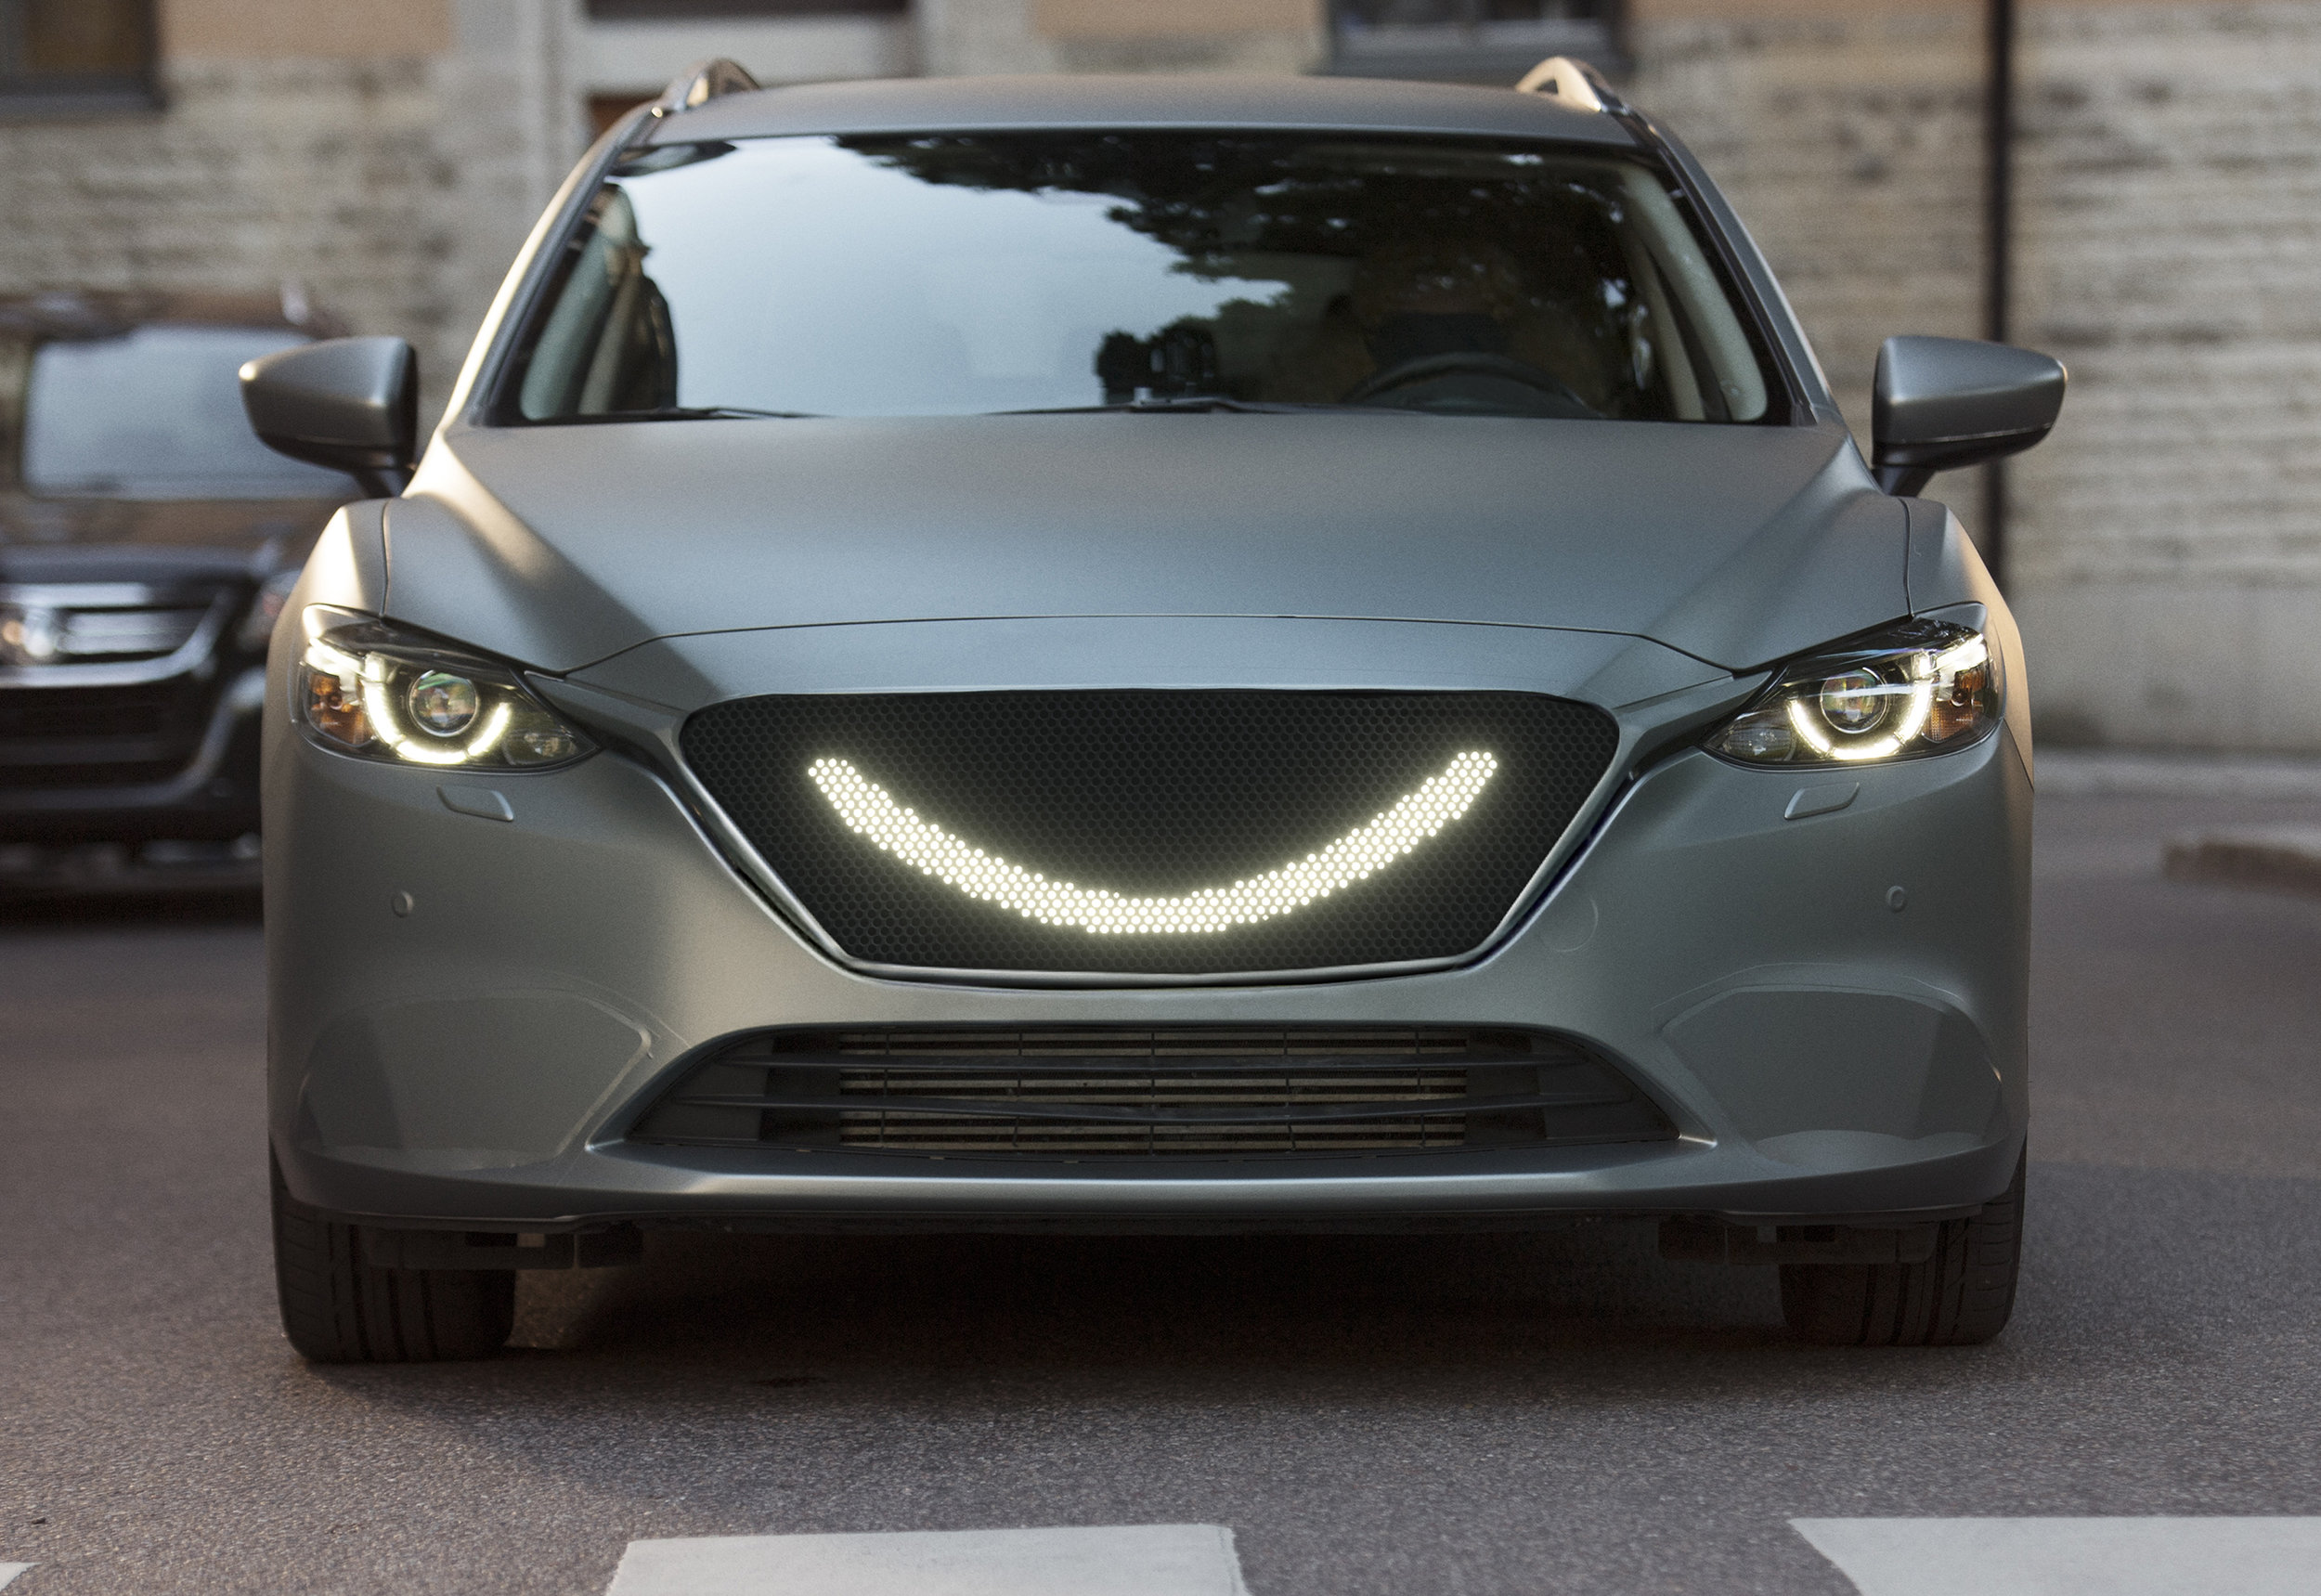 When the self-driving car's sensors detect a pedestrian a smile lights up at the front of the car and the car stops.jpg